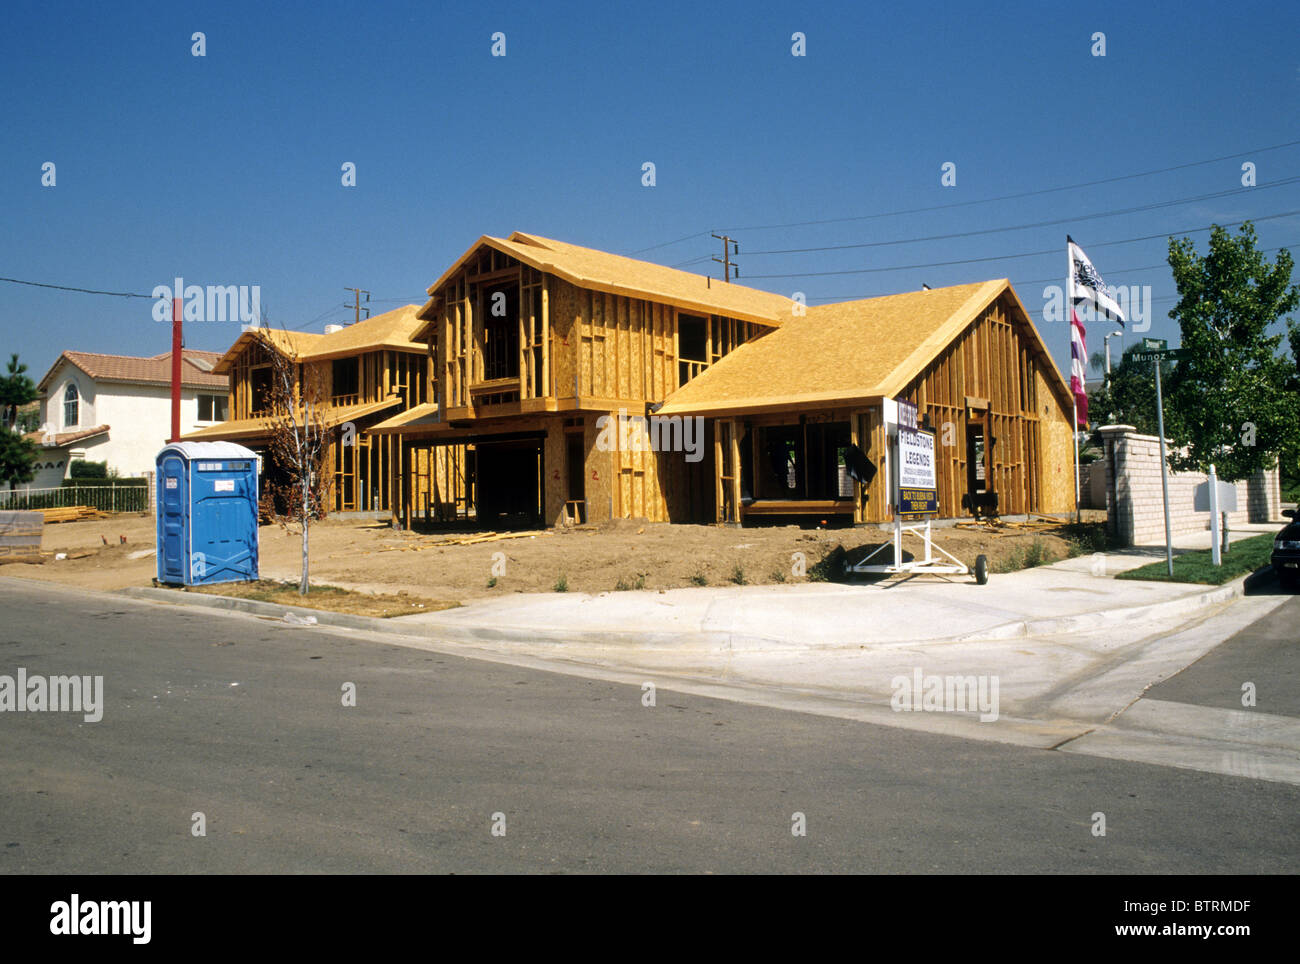 Construction of wooden houses, building materials 67